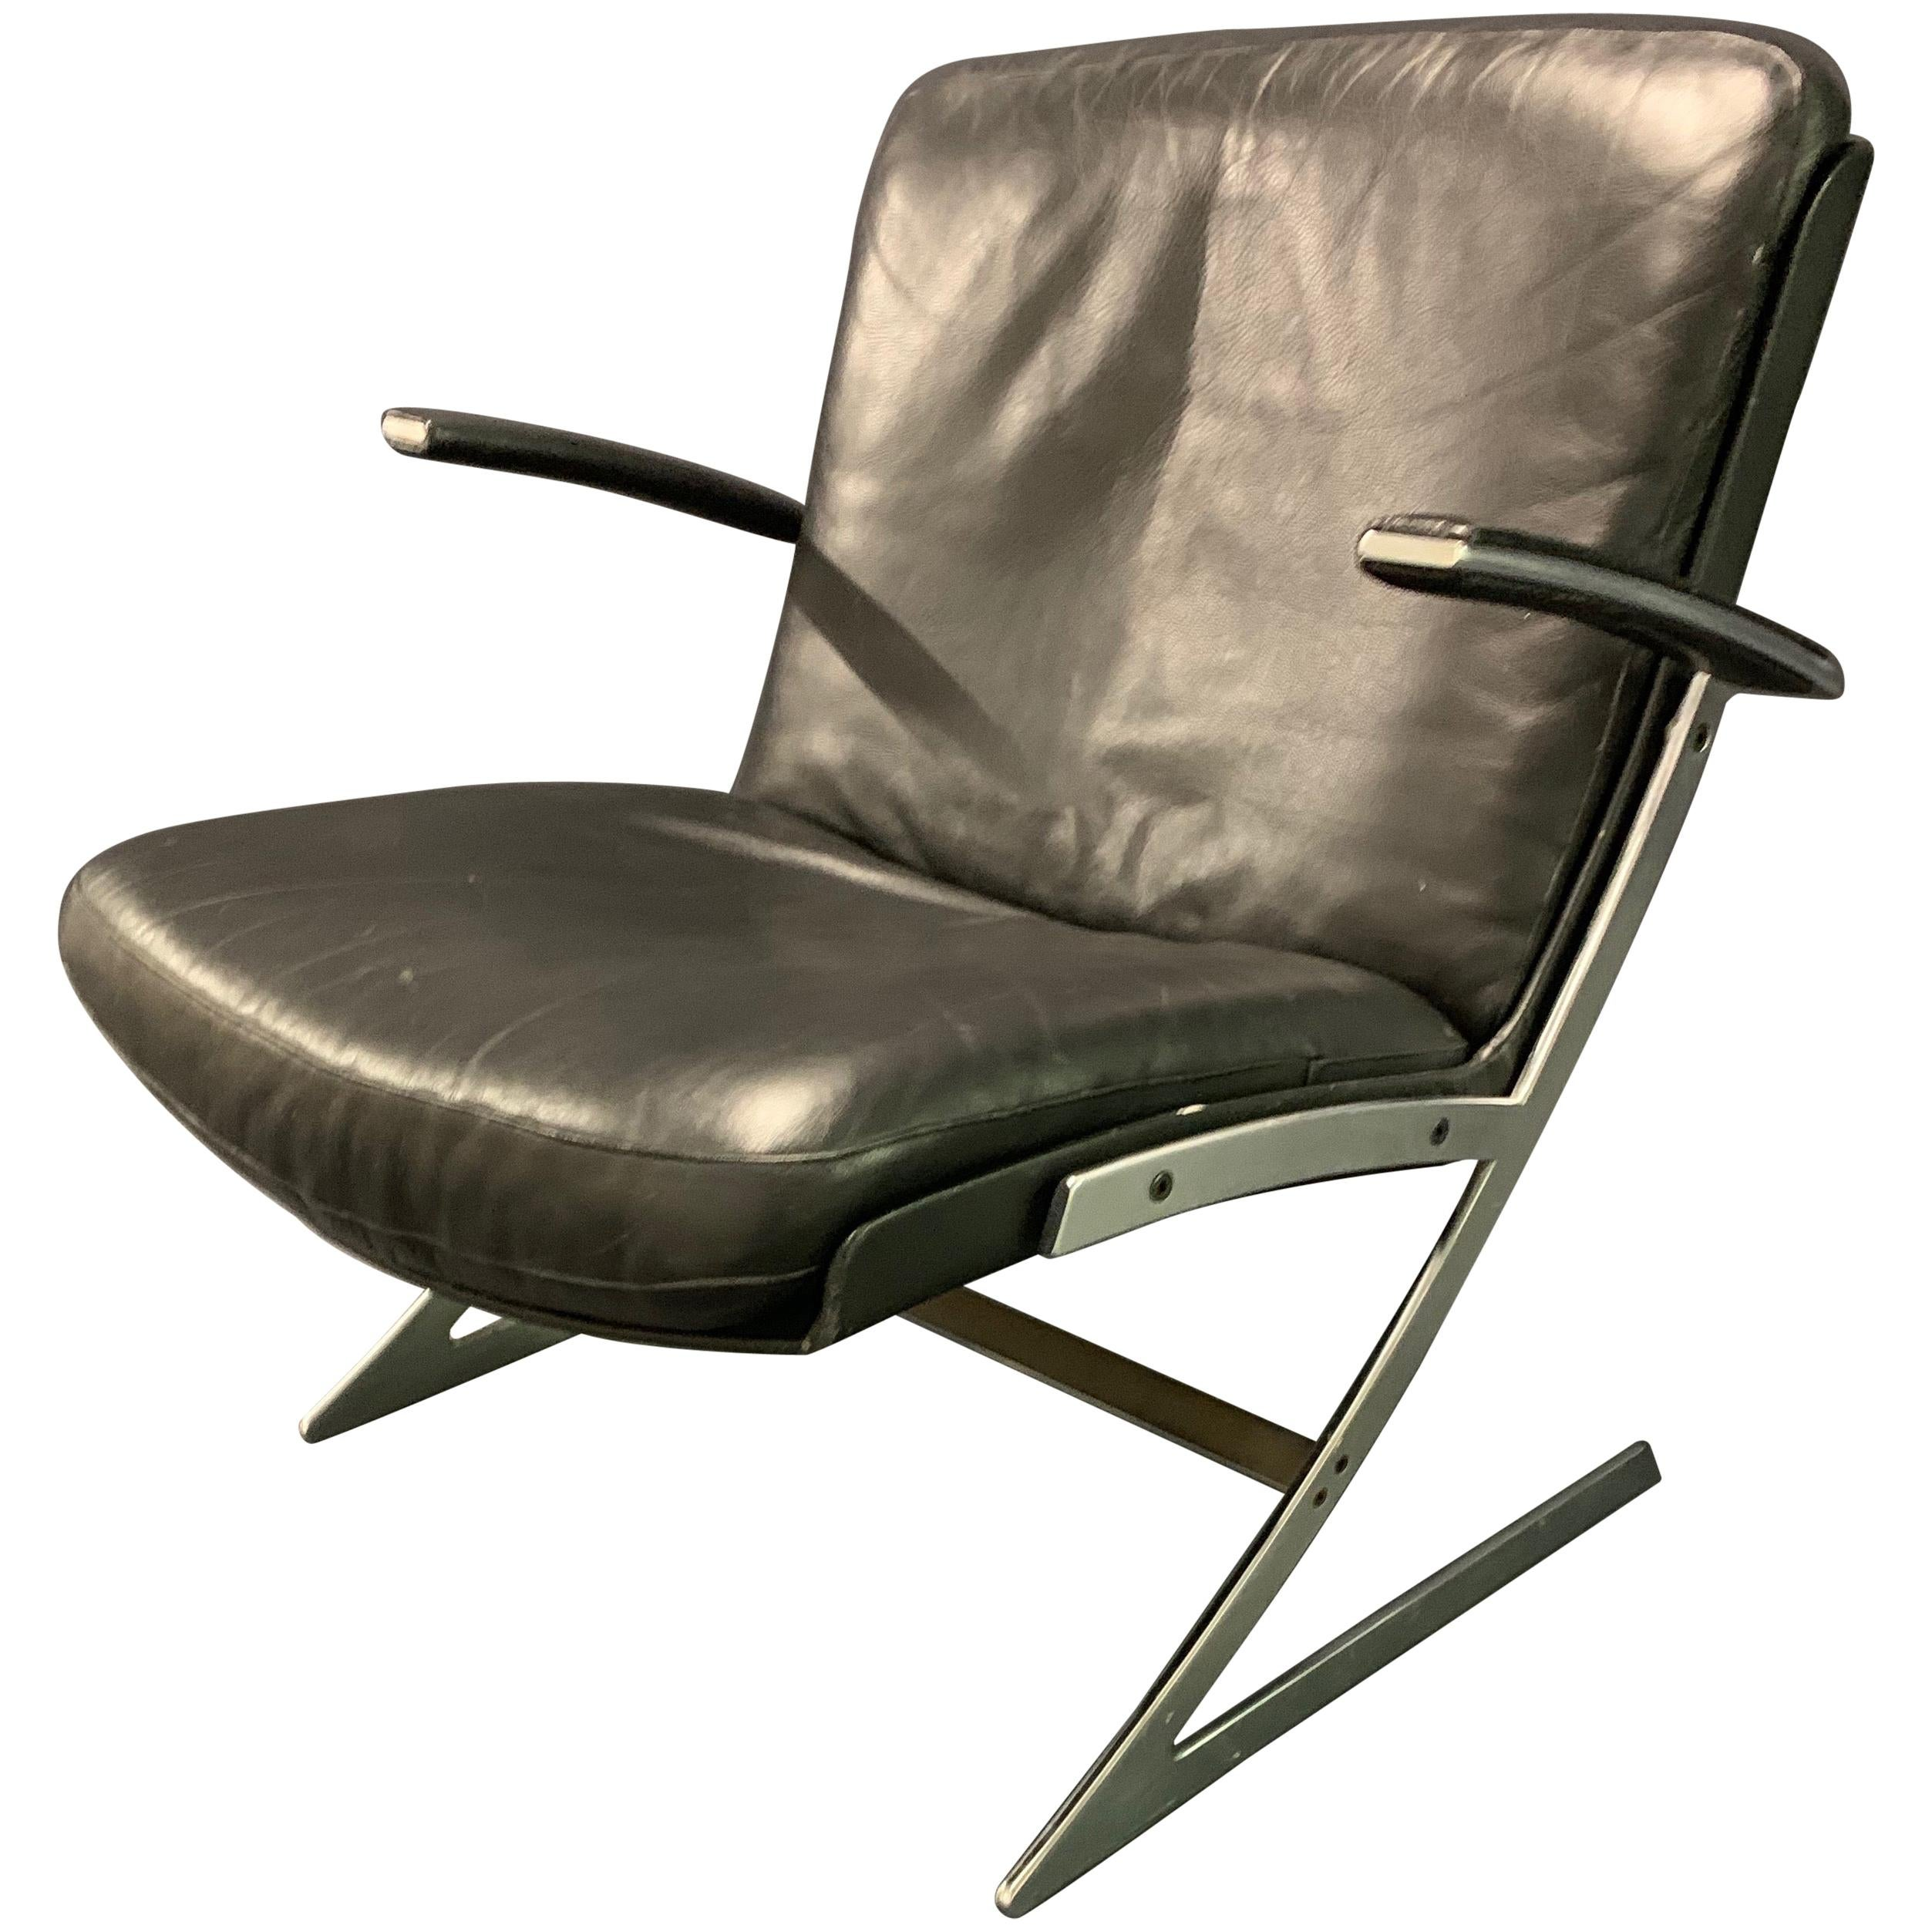 Very Rare Lounge Chair by Preben Fabricius